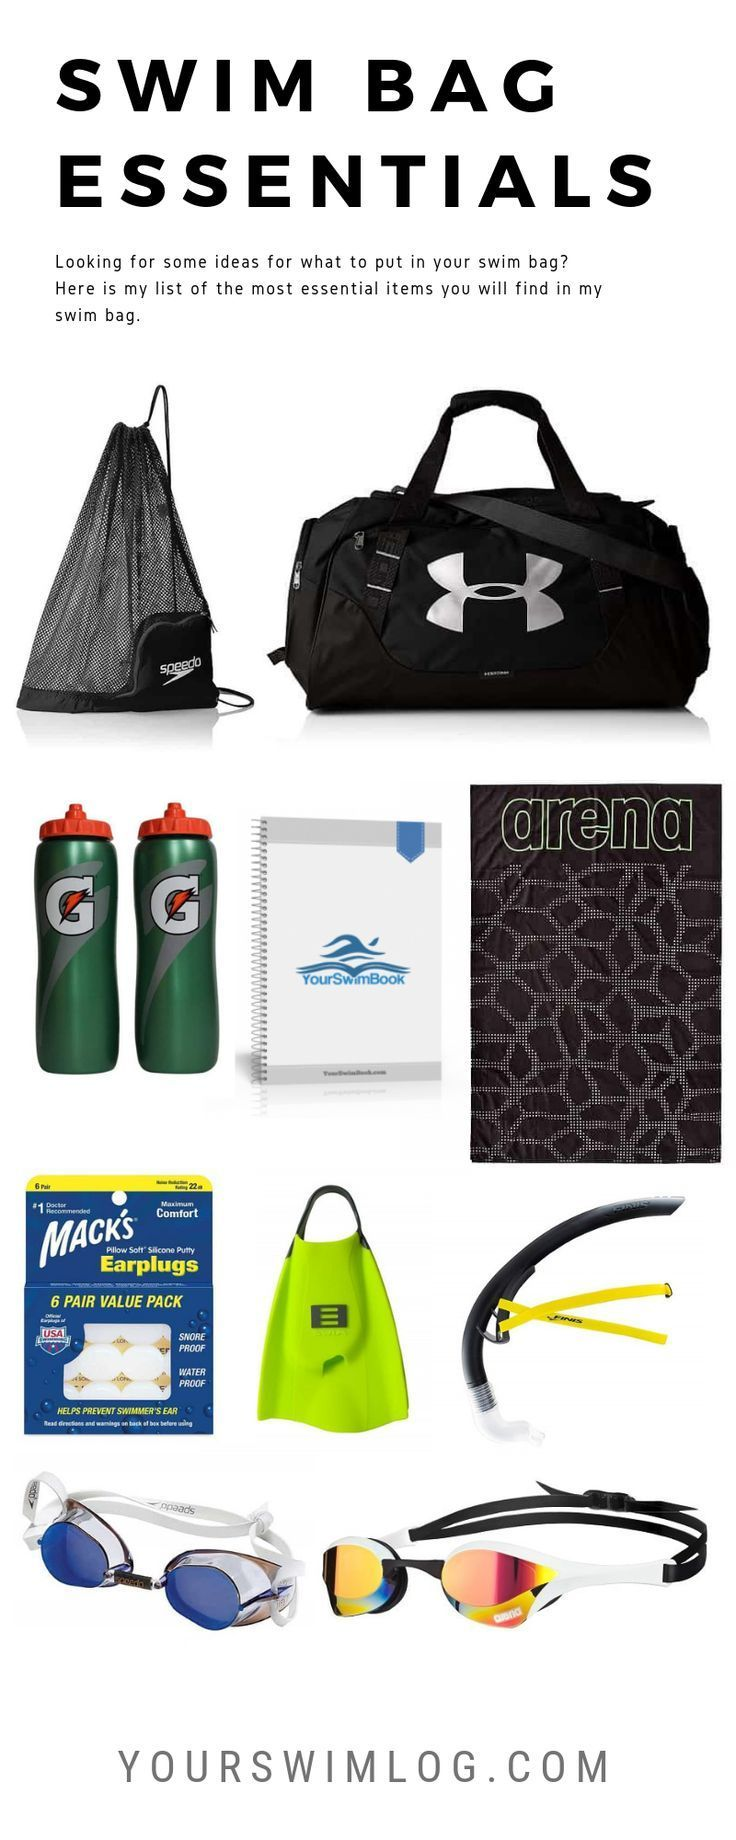 11 Swim Bag Essentials For Competitive Swimmers In 2020 Swimming Bag Swimming Workout Swimming Equipment